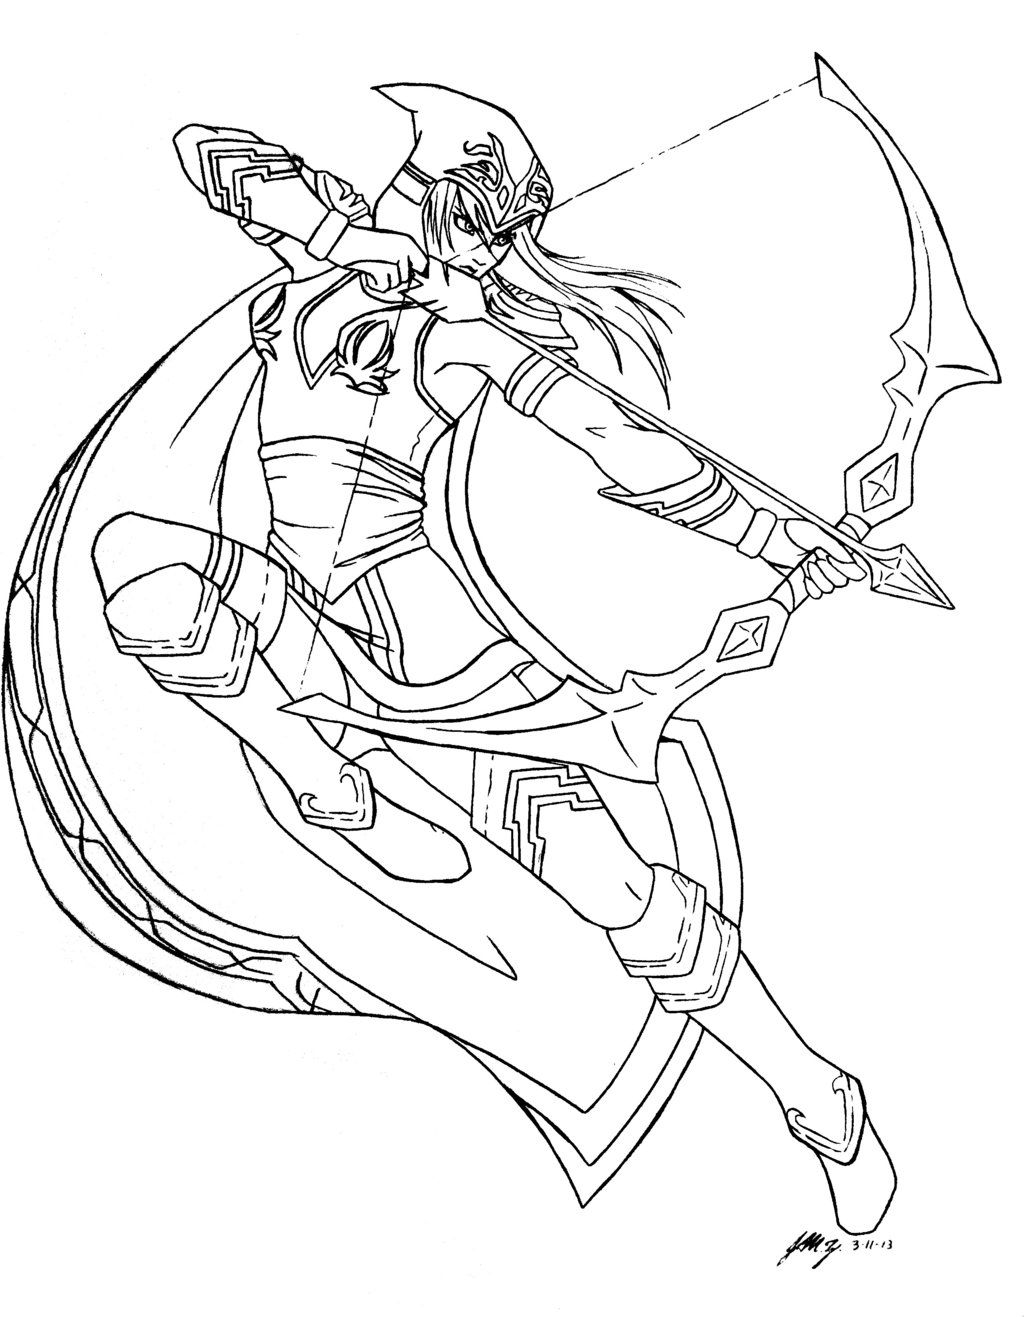 League Of Legends Ashe Lineart By Cristy201 On Deviantart